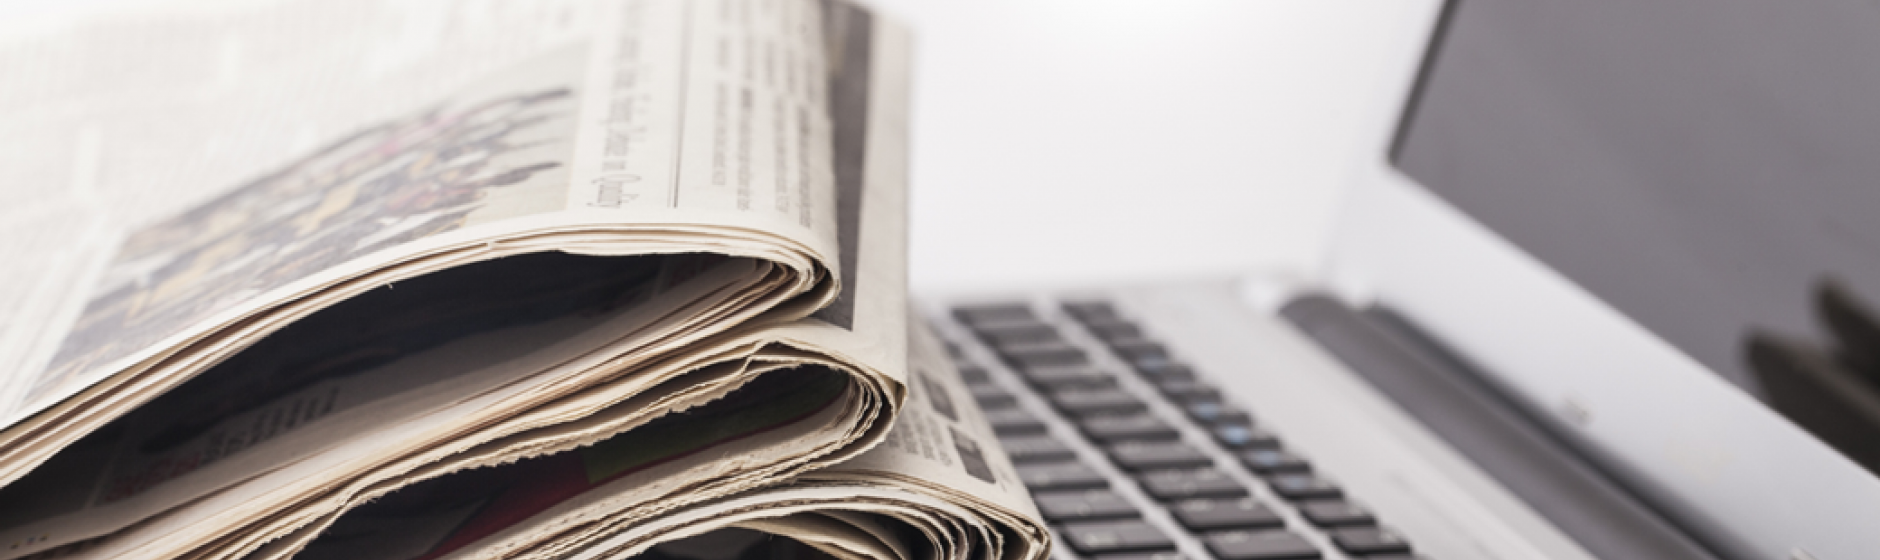 Photo of newspapers on laptop